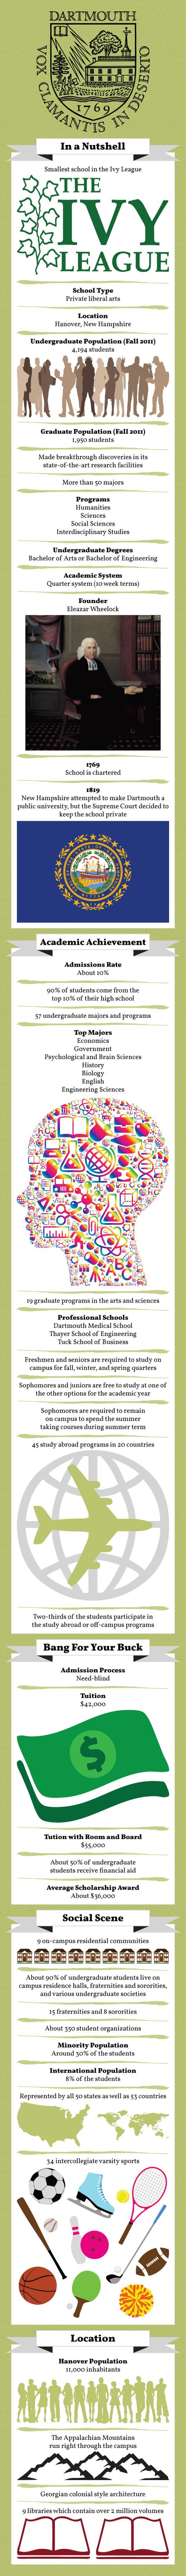 Dartmouth College #Infographic - Re-pin to share. :)